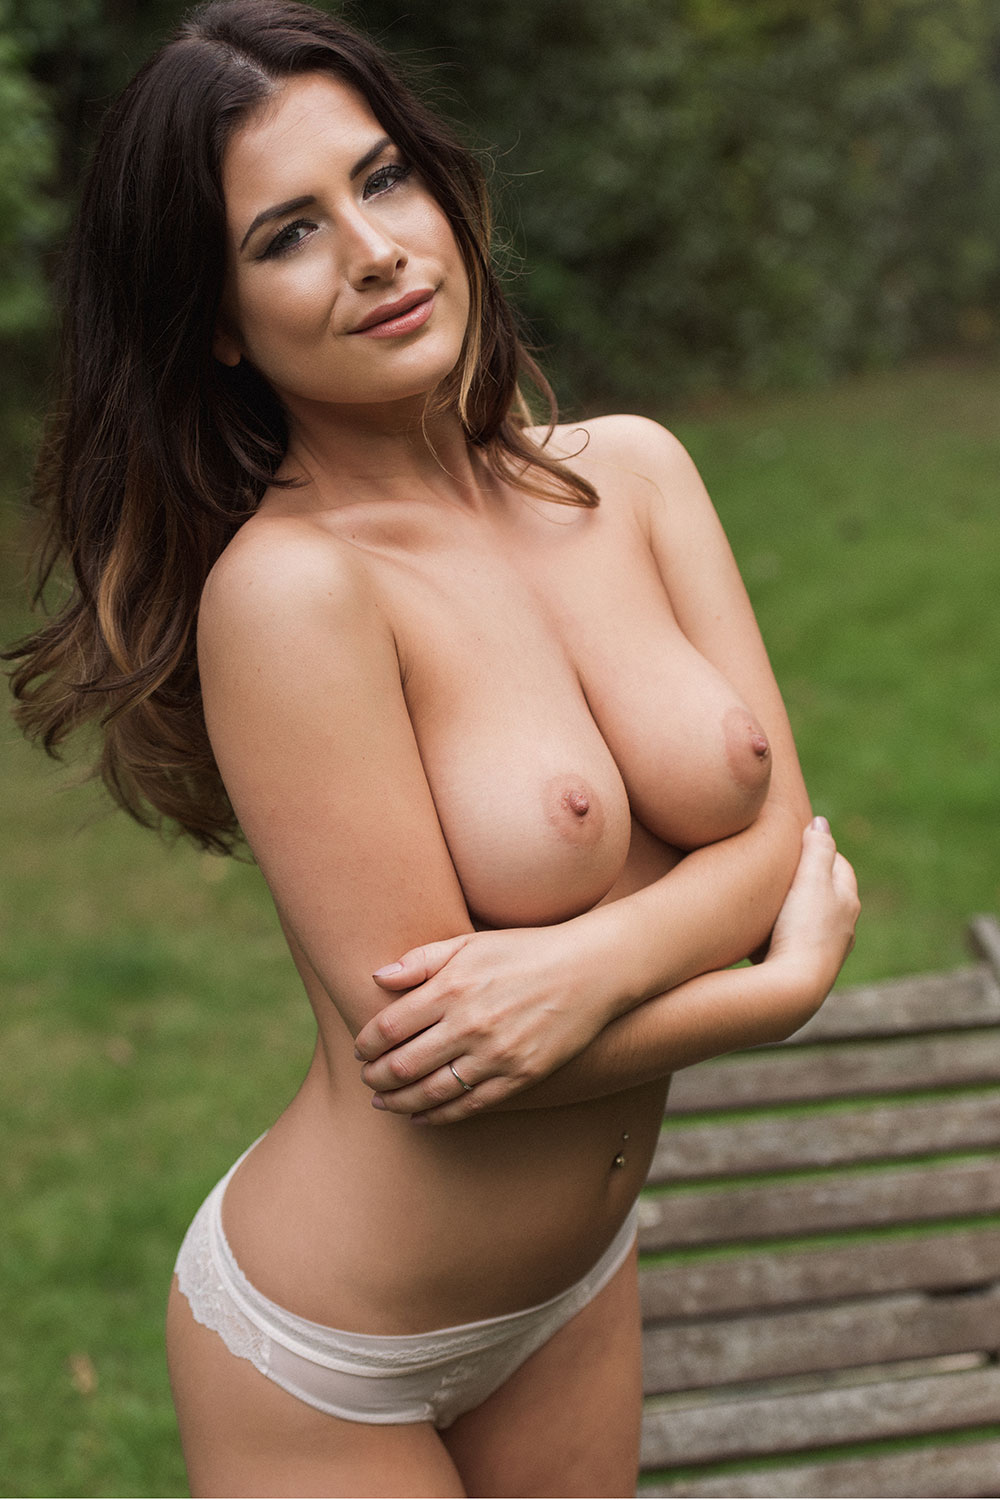 Kelly Hall Sexy Topless 1 1 Sn840